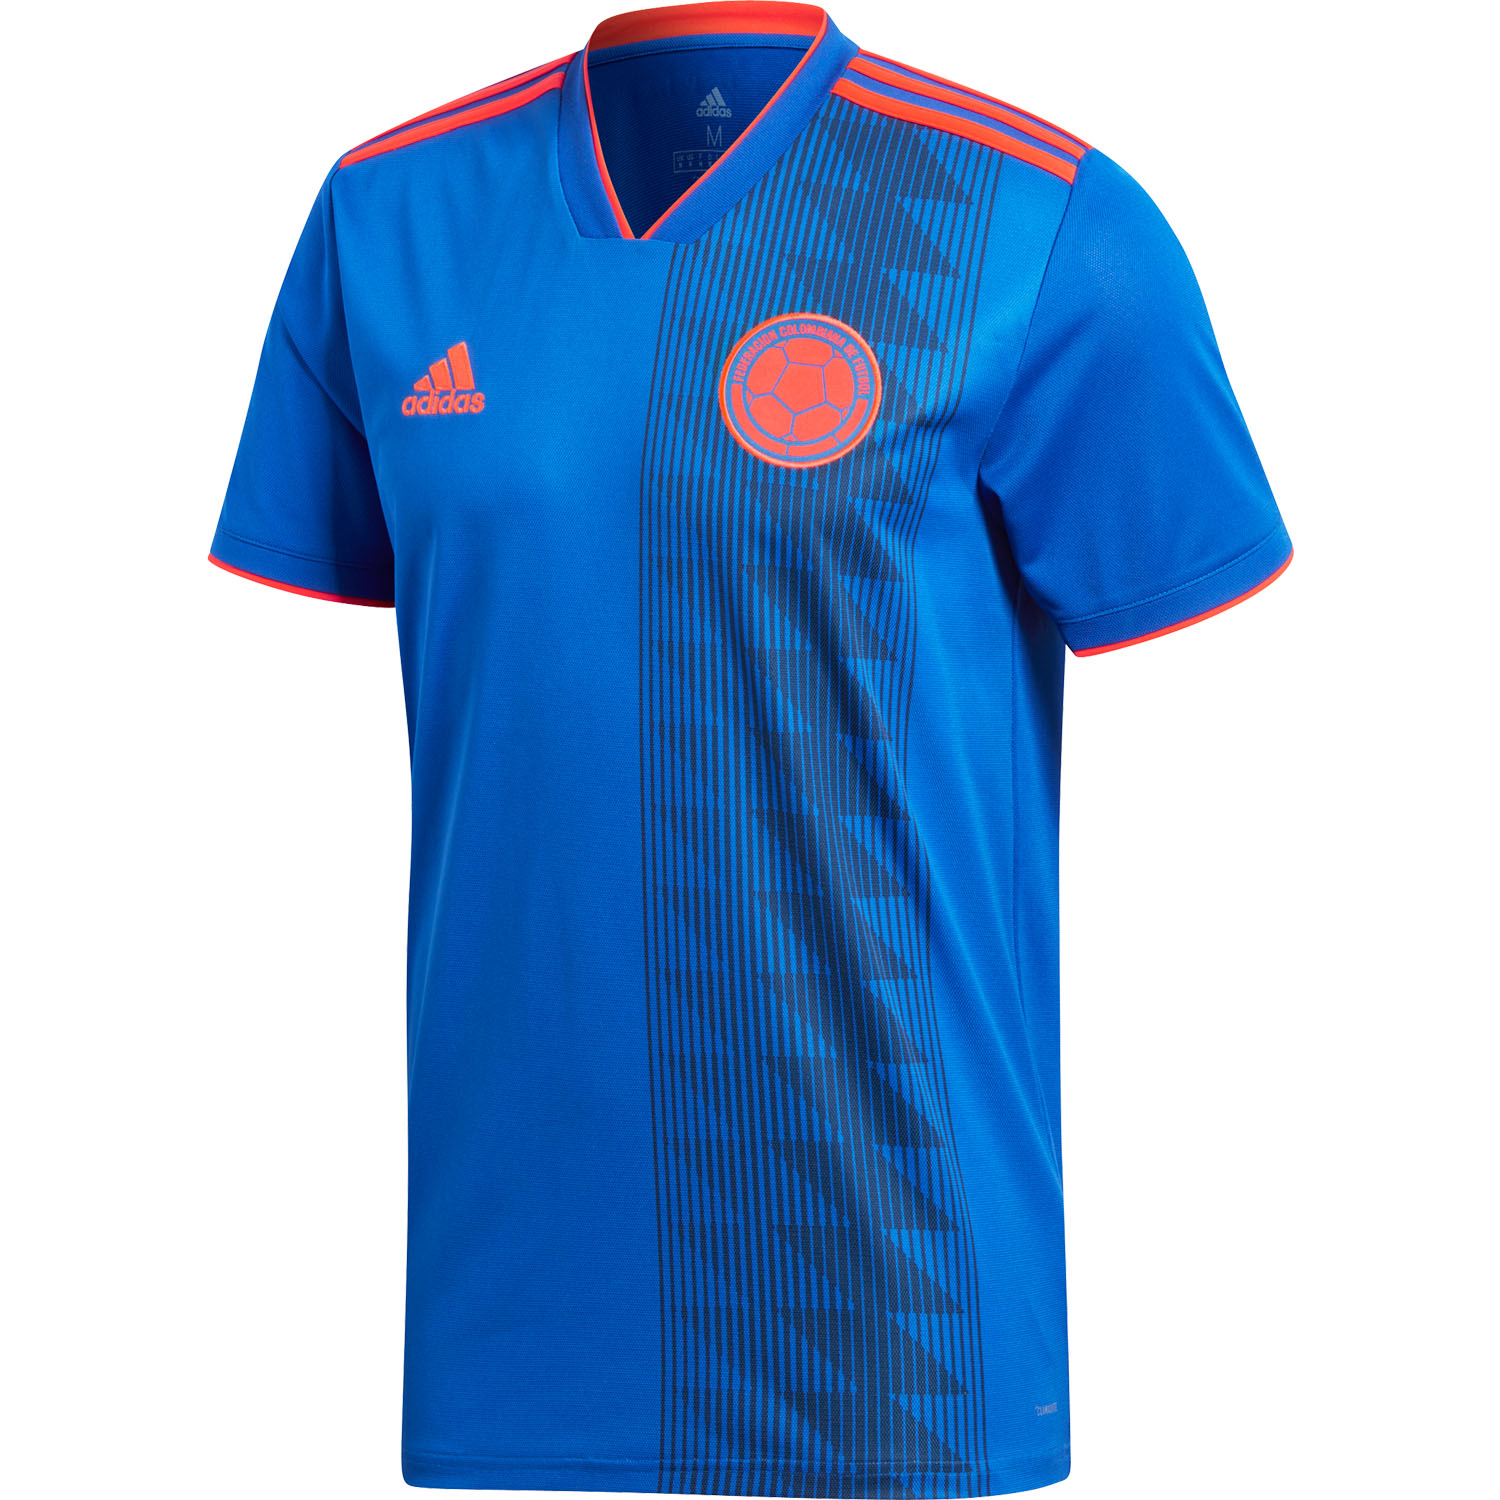 Image result for colombia world cup away jersey